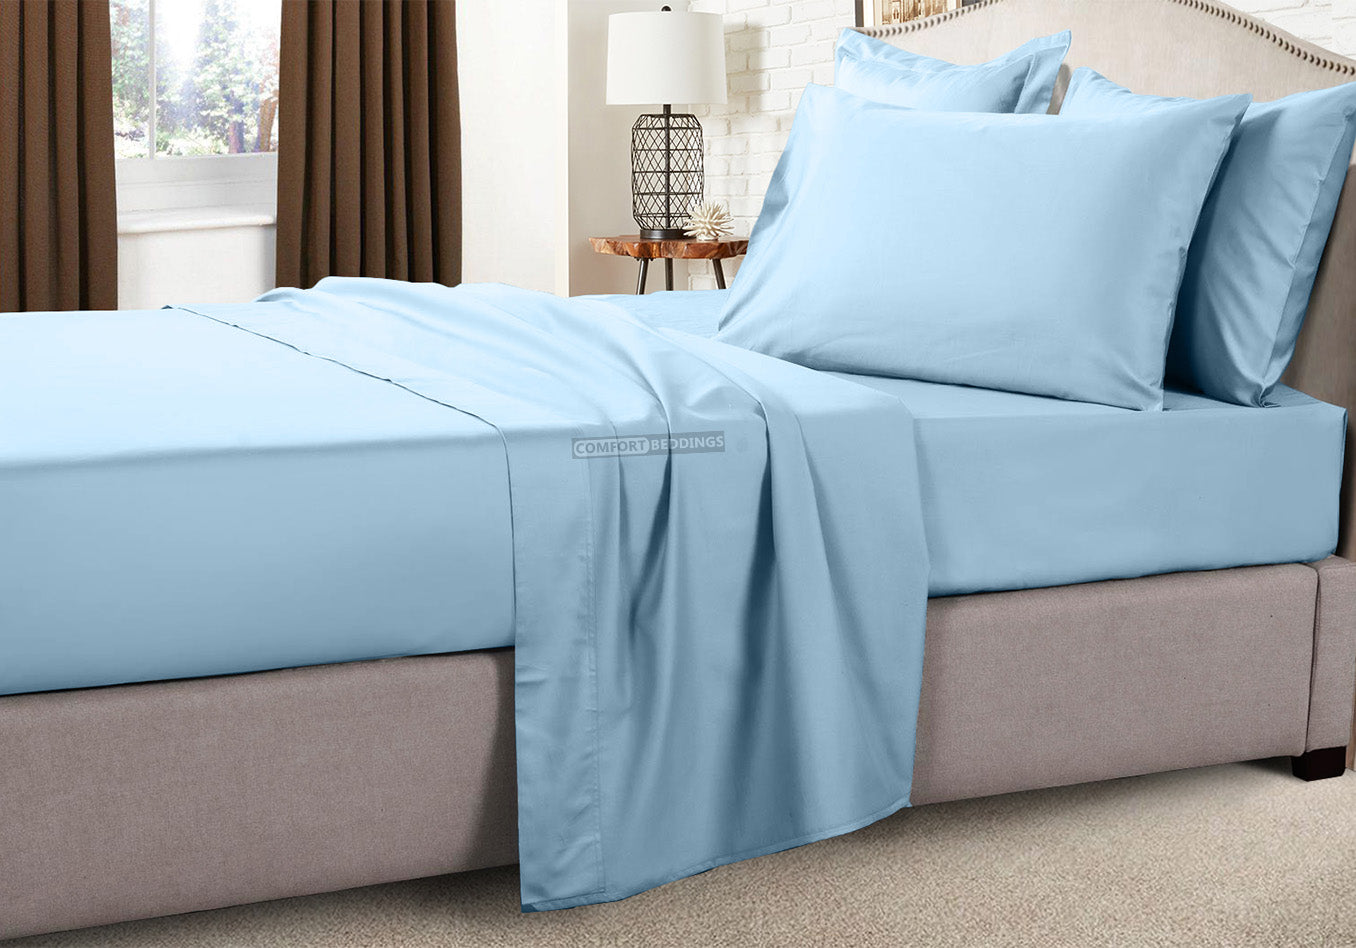 Wrinkle Free Light Blue RV Sheets